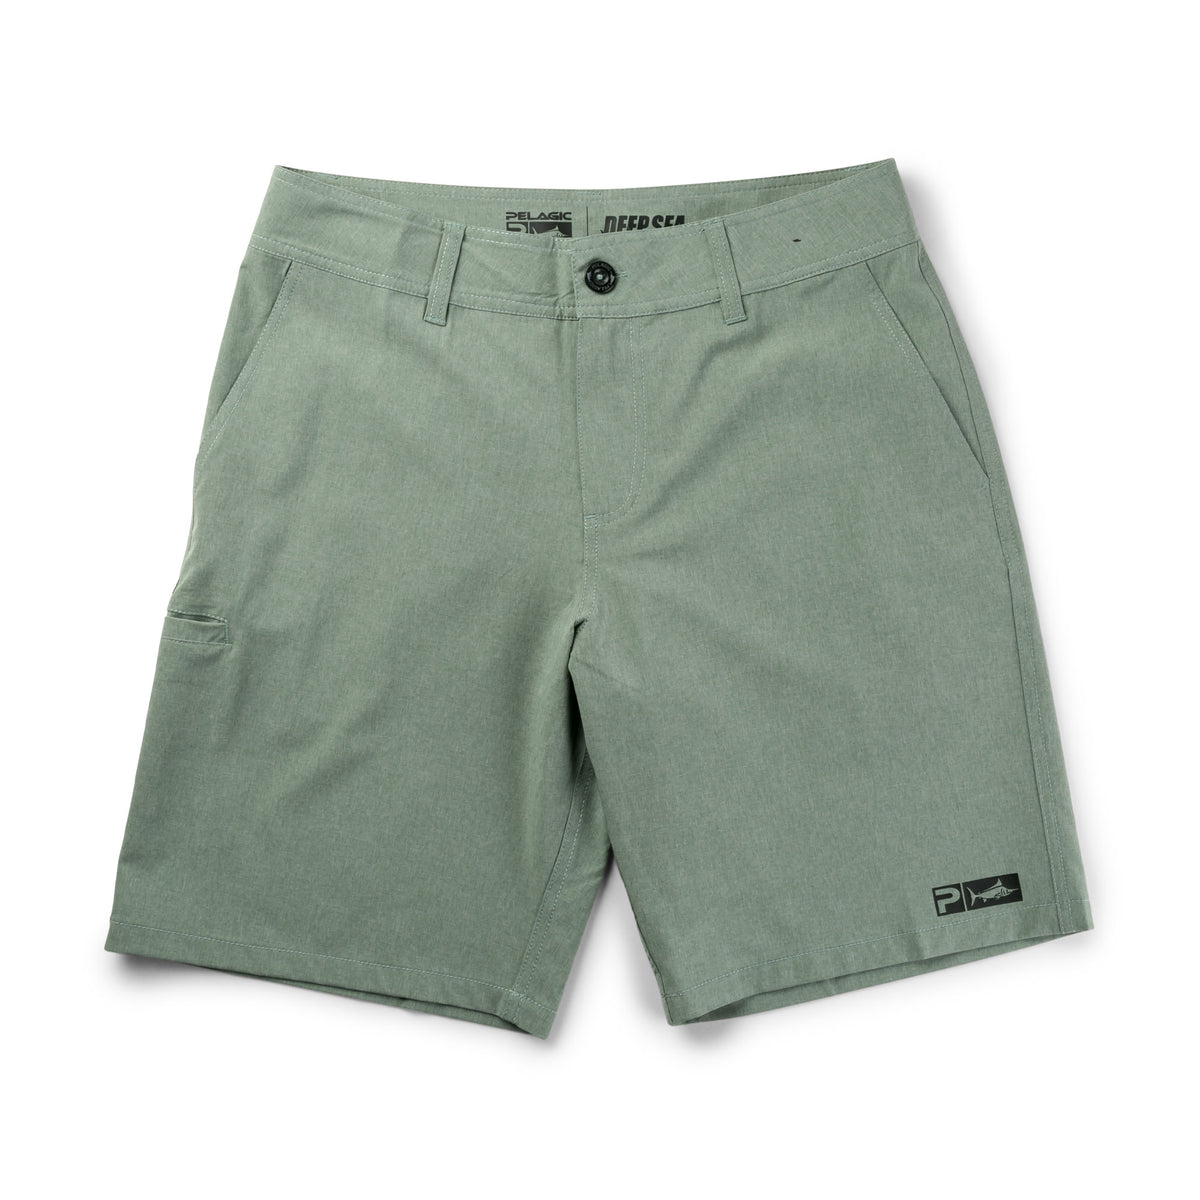 Deep Sea Hybrid Fishing Shorts - Youth Big Image - 1